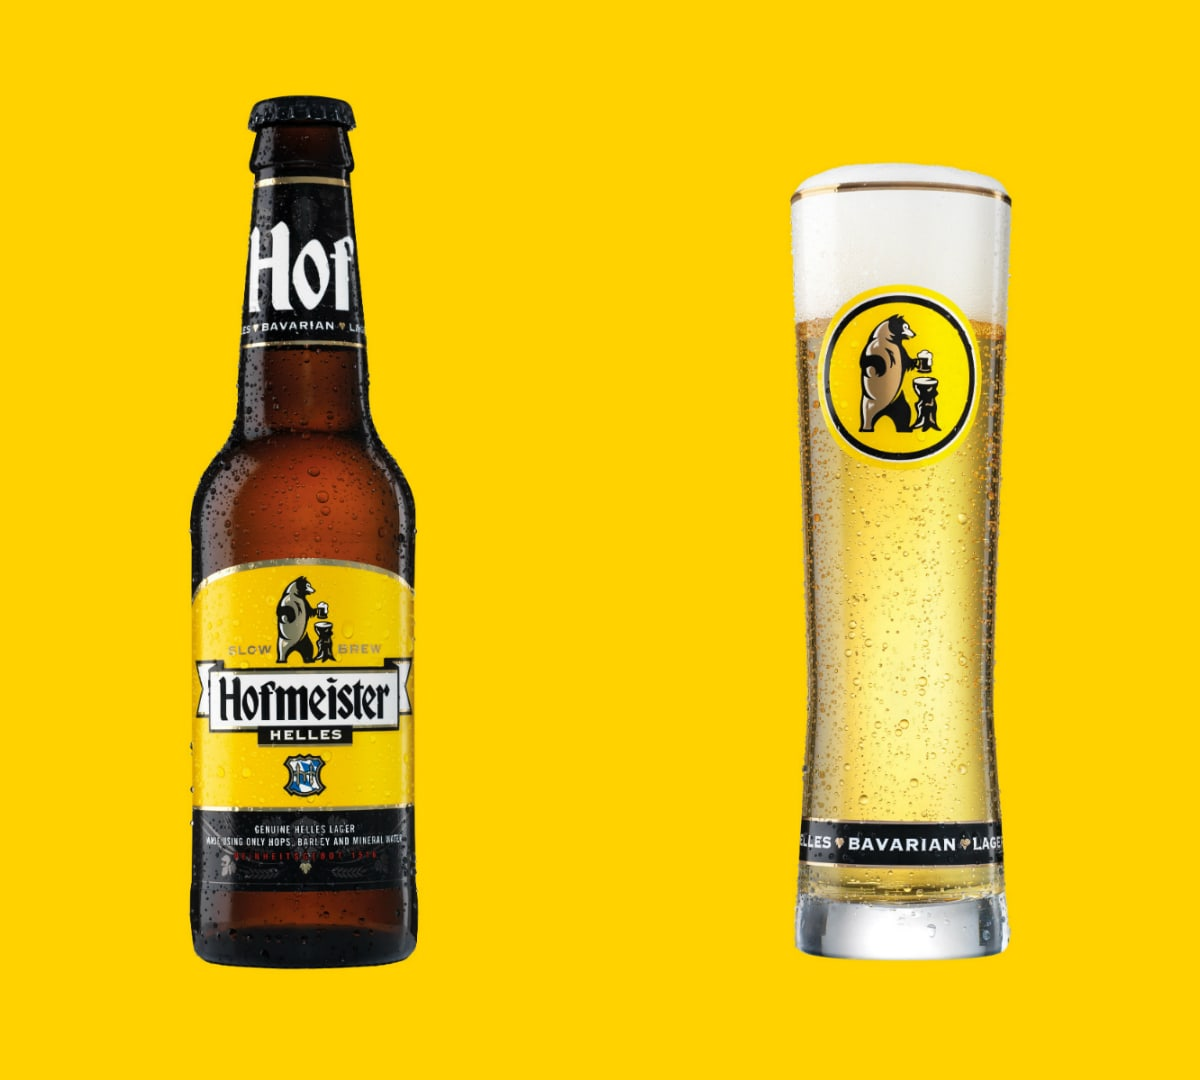 Hofmeister Returns with a Bavarian Slow Brew